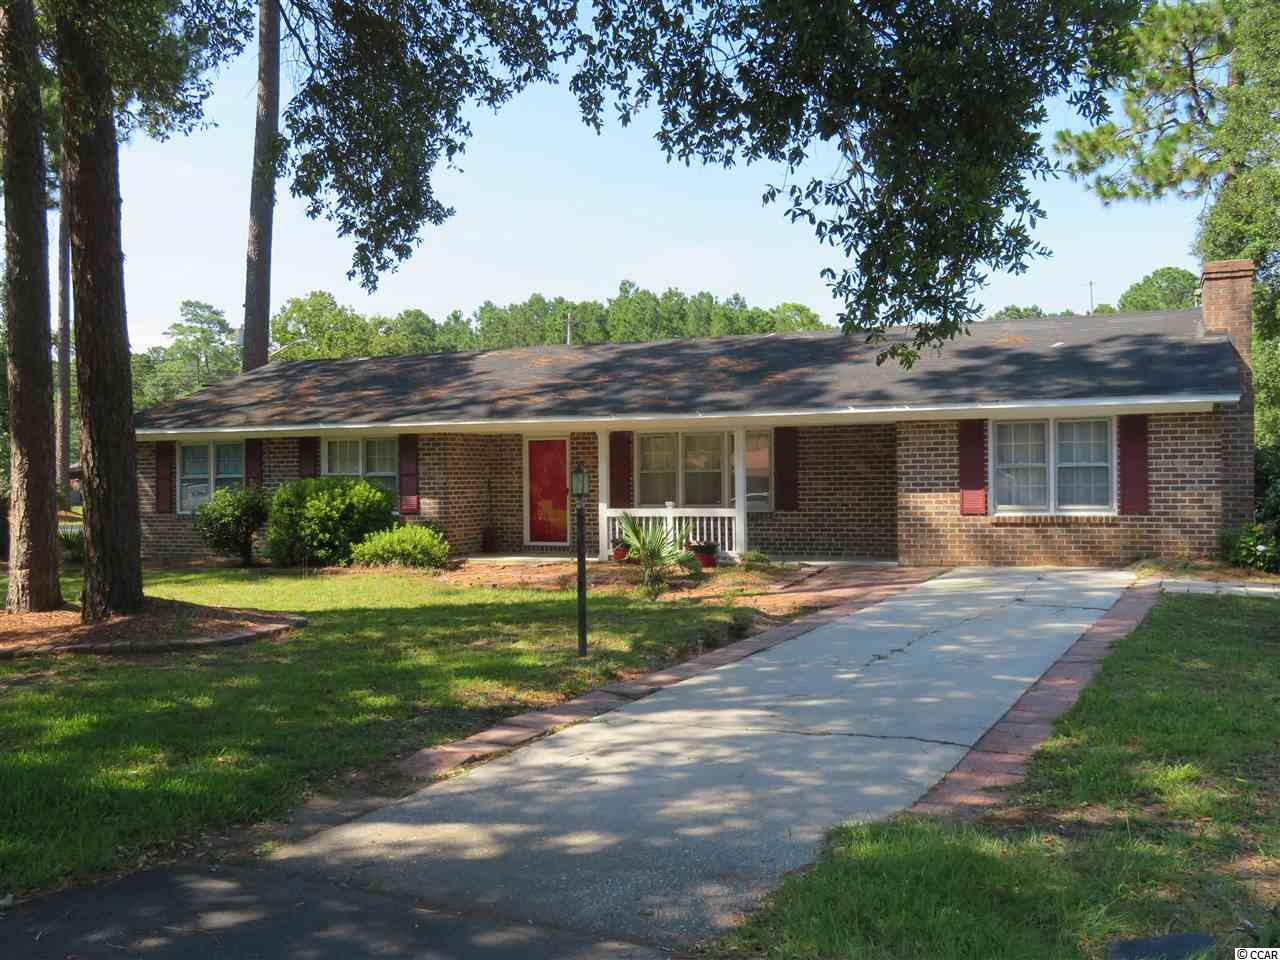 Four bedroom, two bathroom all brick home in the Maryville Pines section of Georgetown, SC. This home sits on a large corner lot with a 0.33 acre yard, mature landscaping and no HOA!  Home needs a buyer with a vision to complete the process of renovation that was started.  Schedule your showing today!  All measurements are approximate and not guaranteed.  Buyer to verify.